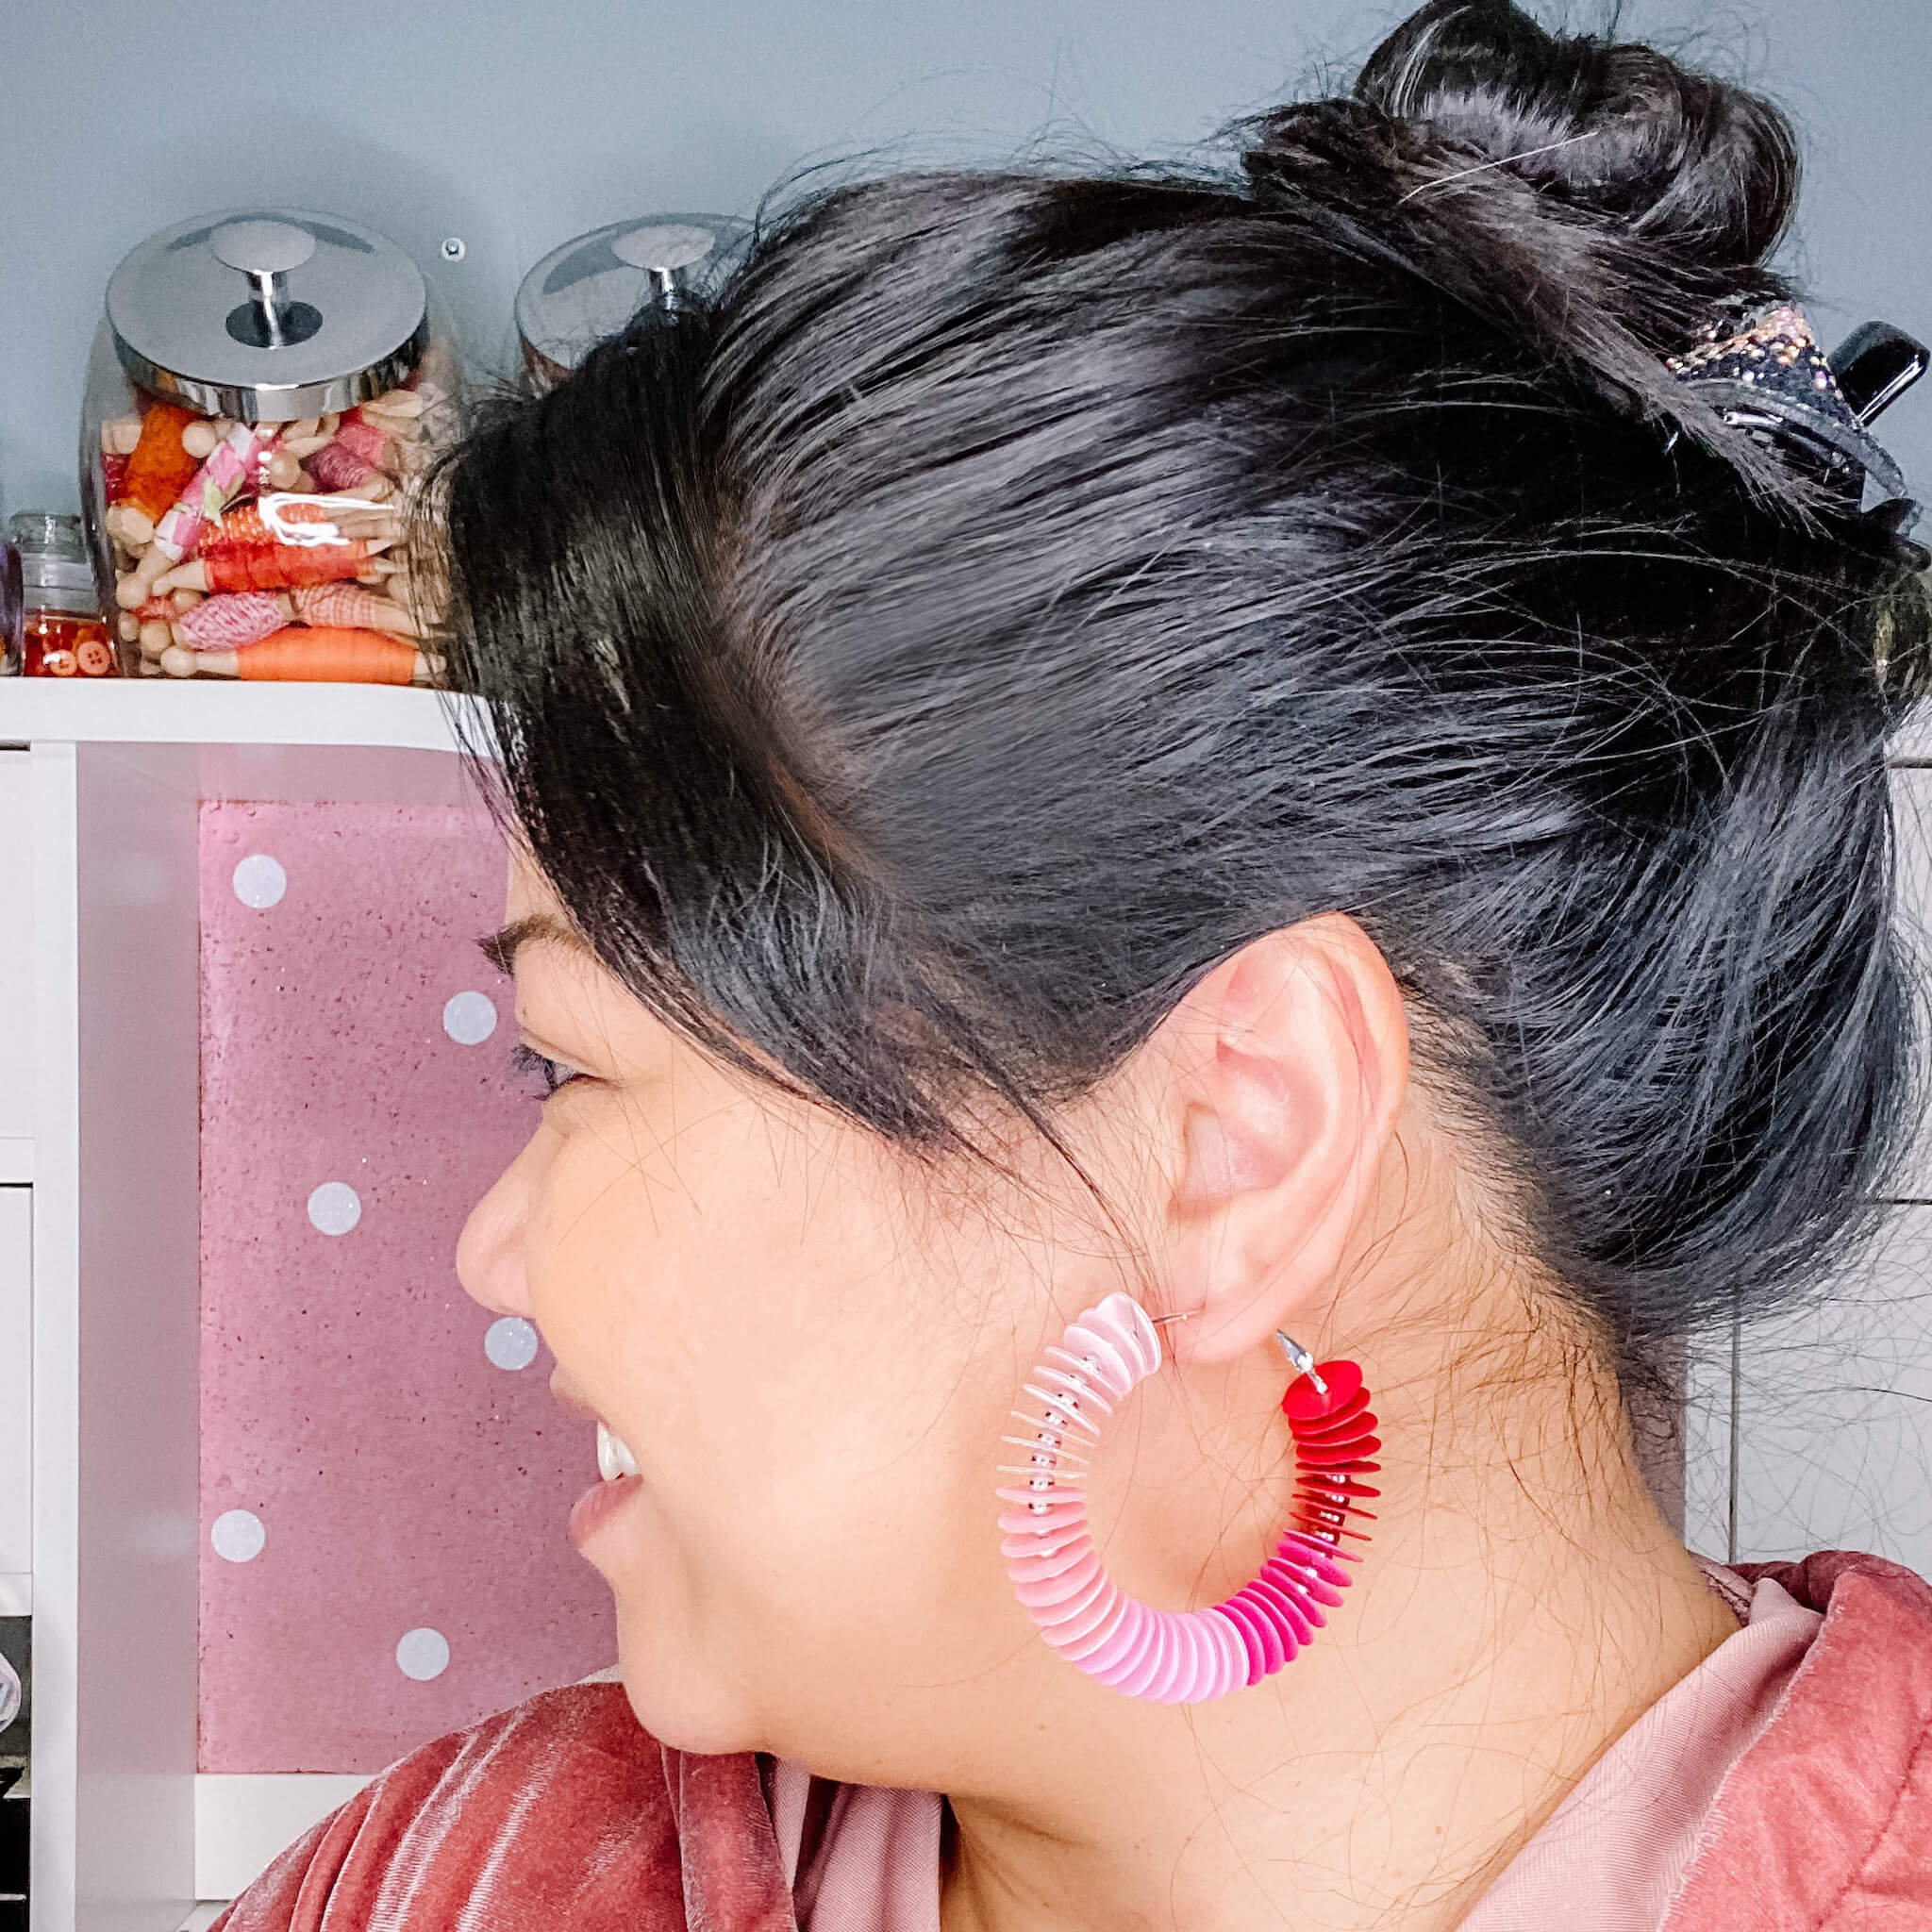 Wearing DIY paper circle hoop earrings